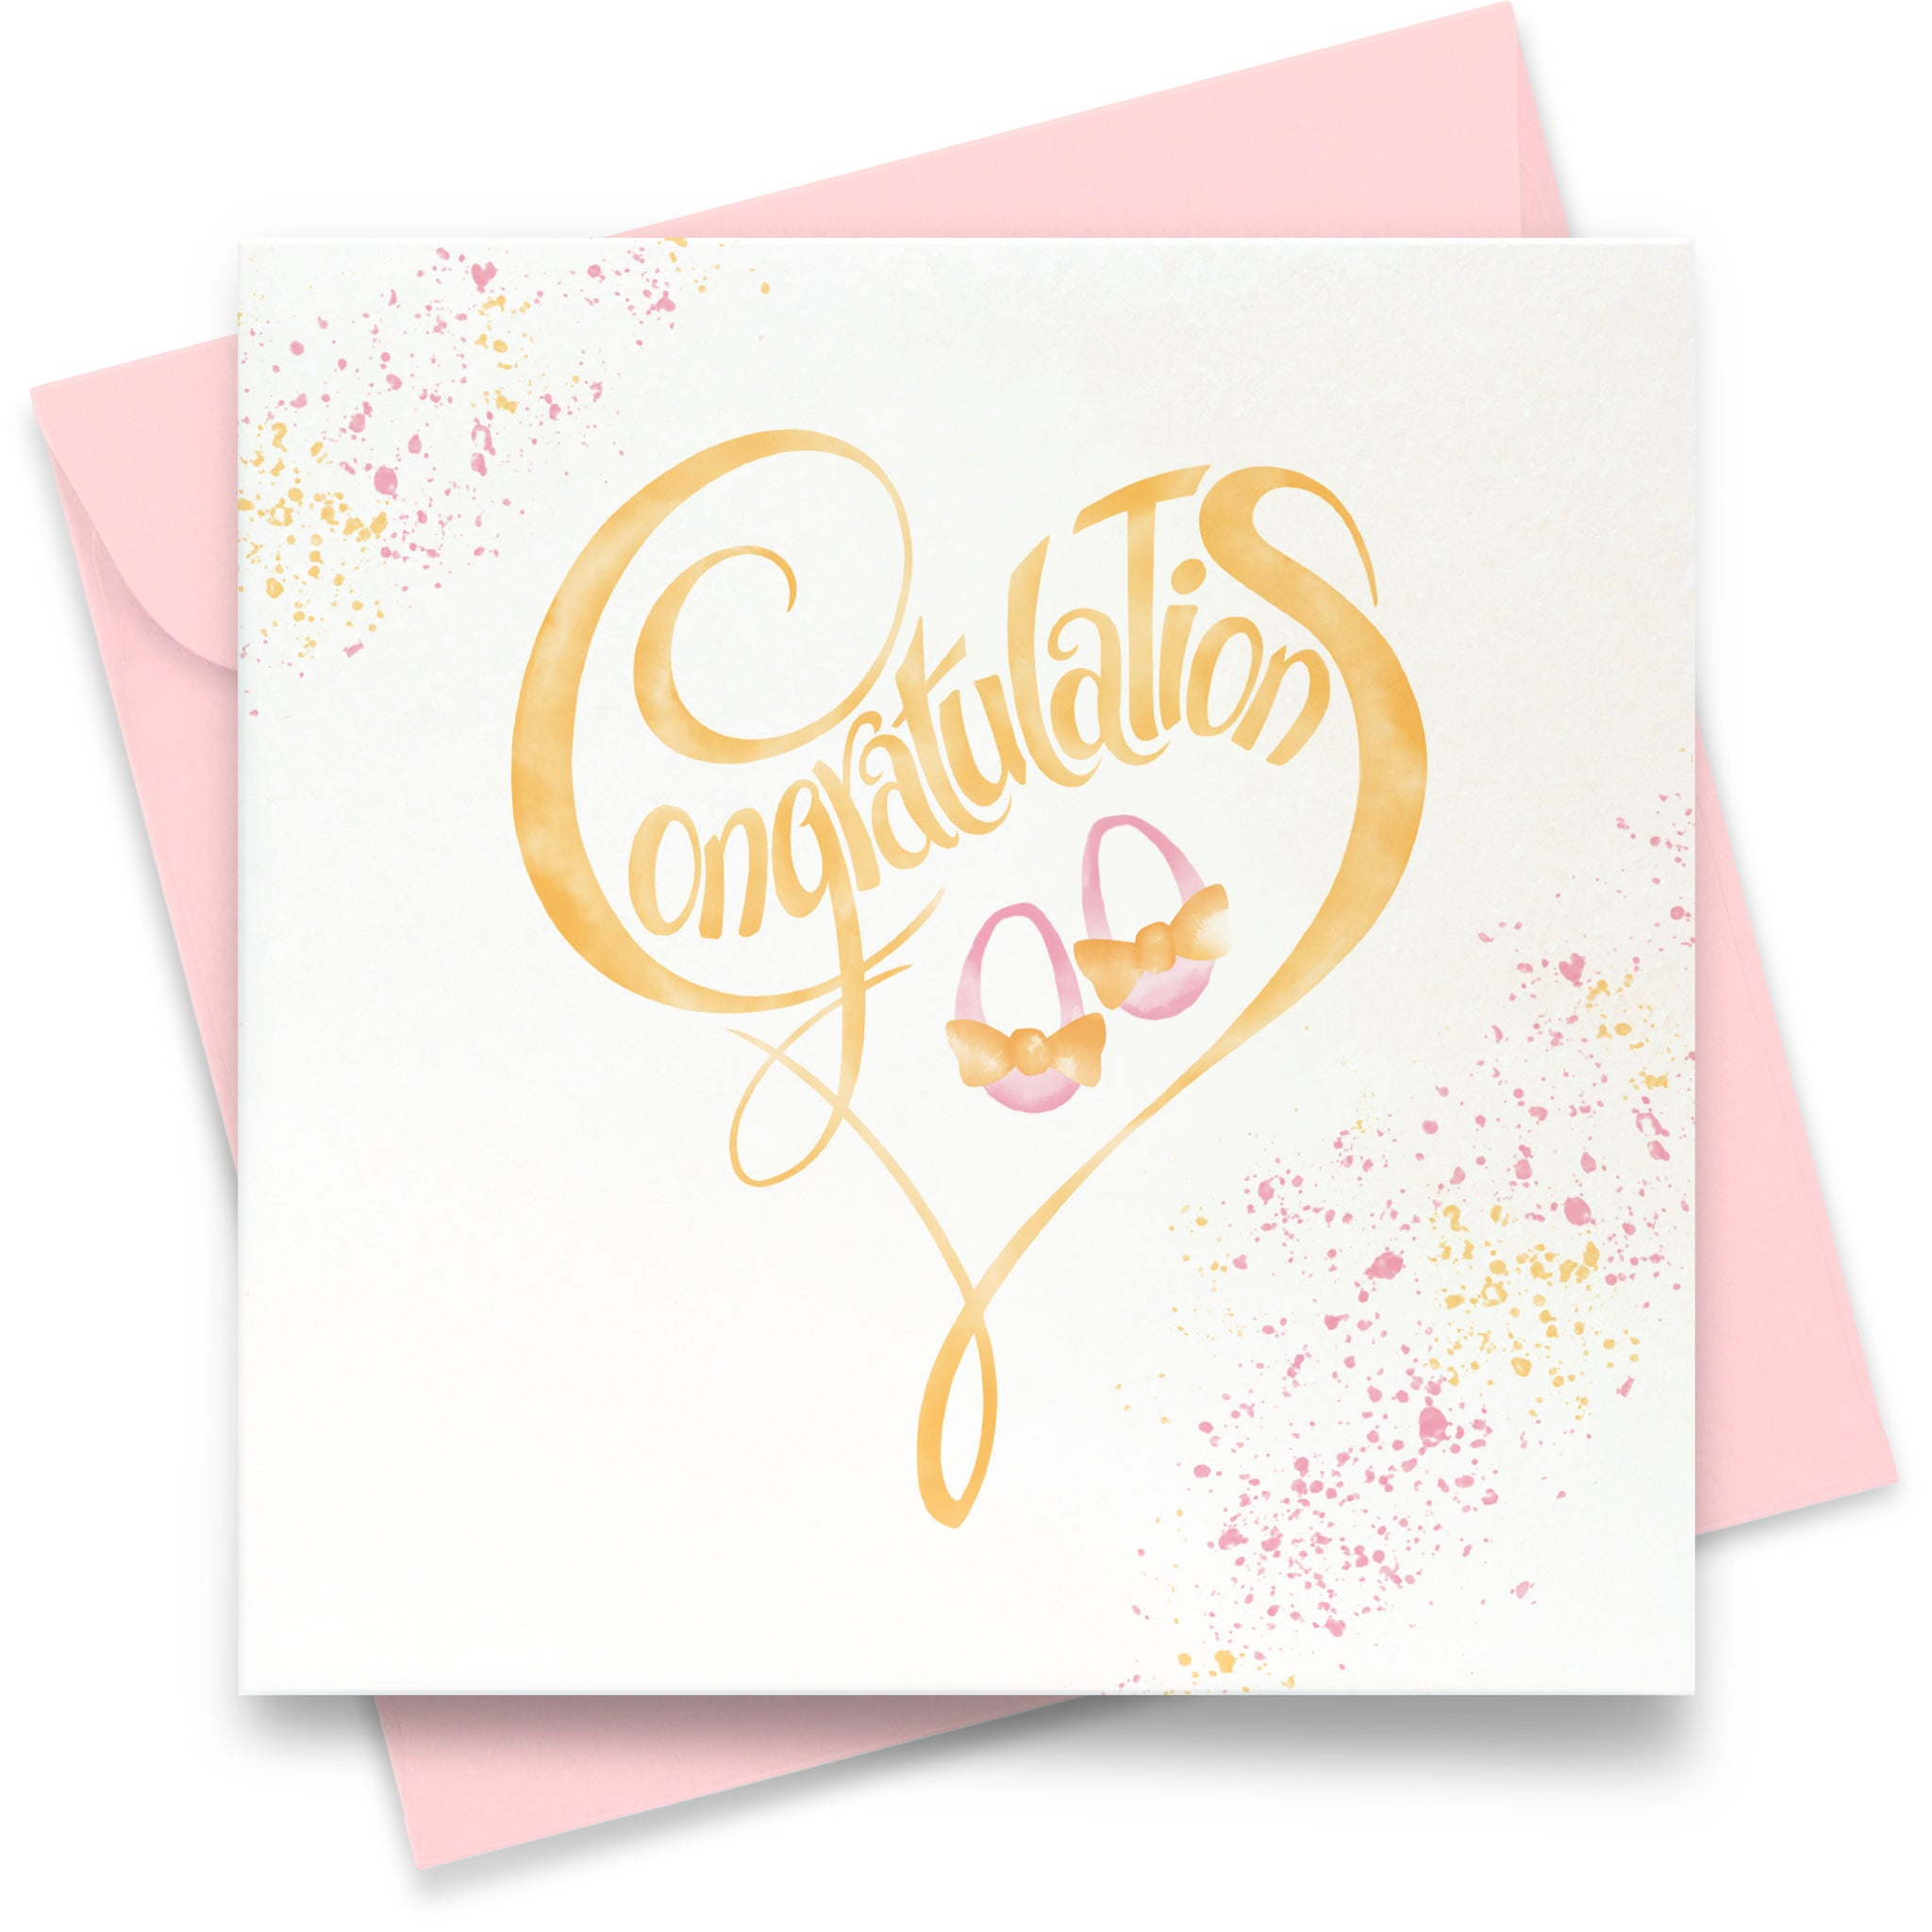 Congratulations - Baby Girl: Greeting Card